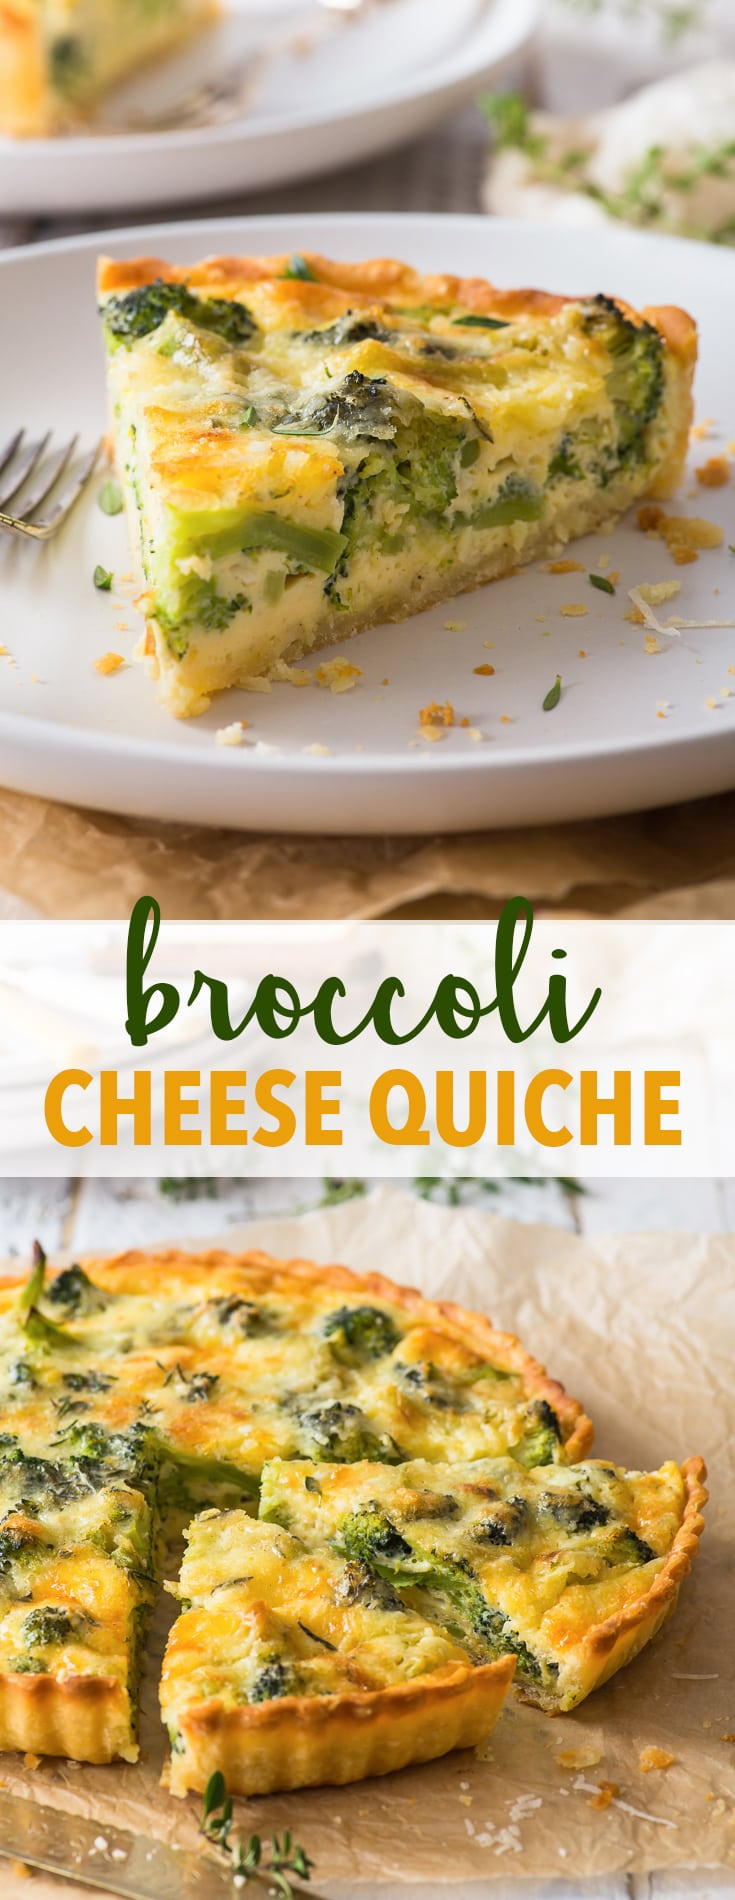 Vegetarian Broccoli Quiche The Loopy Whisk